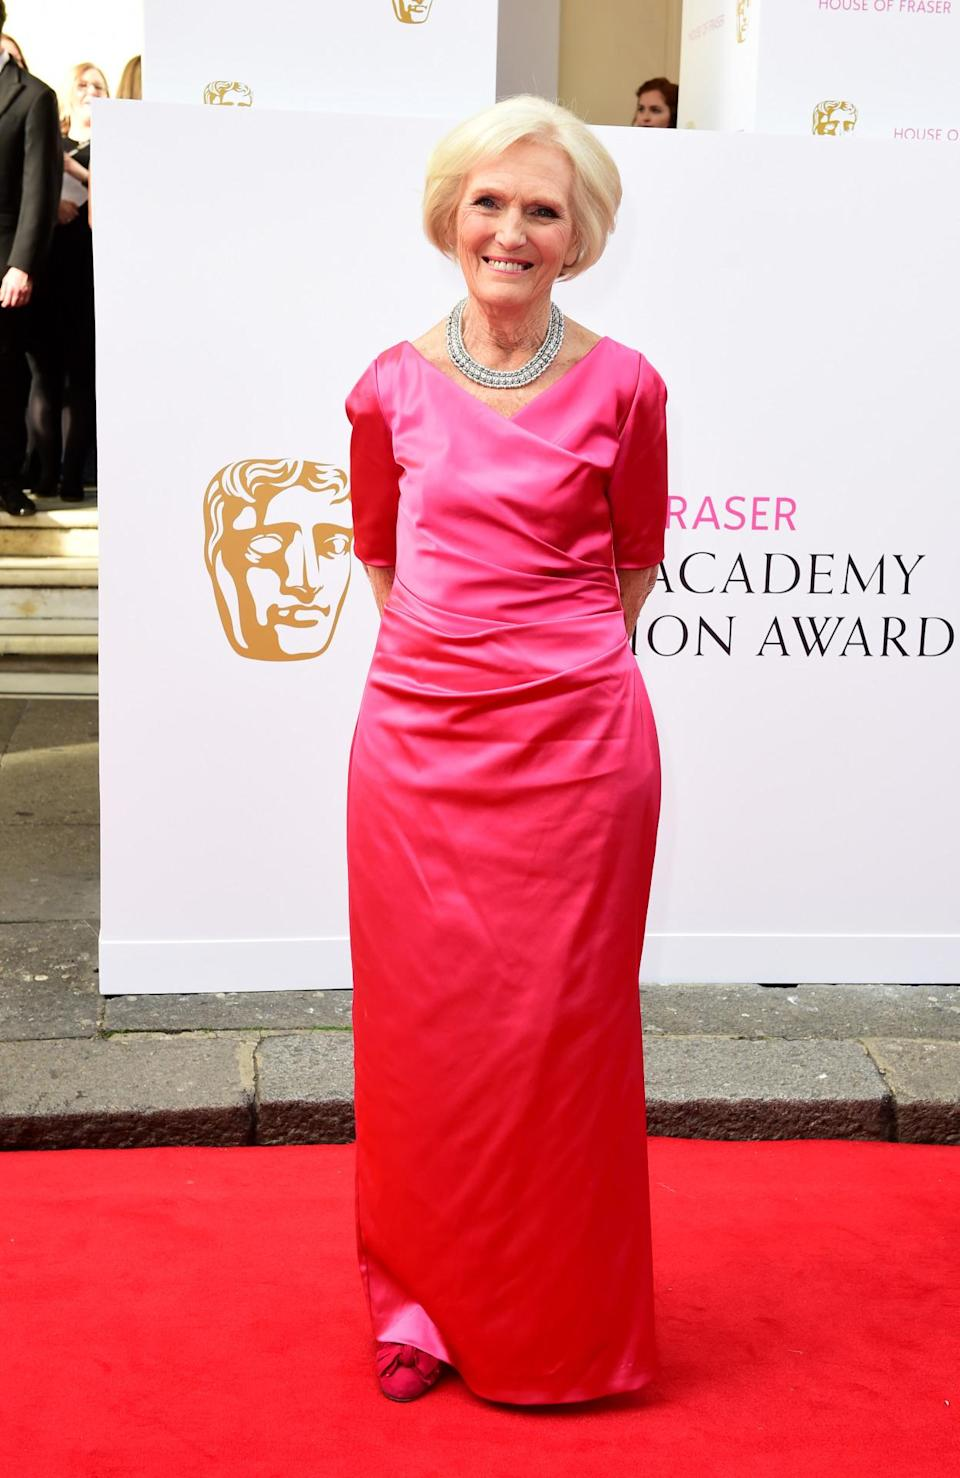 <p>A bright pink satin gown was Mary's daring outfit of choice for the British Academy Television Awards. </p><p><i>[Photo: PA]</i></p>